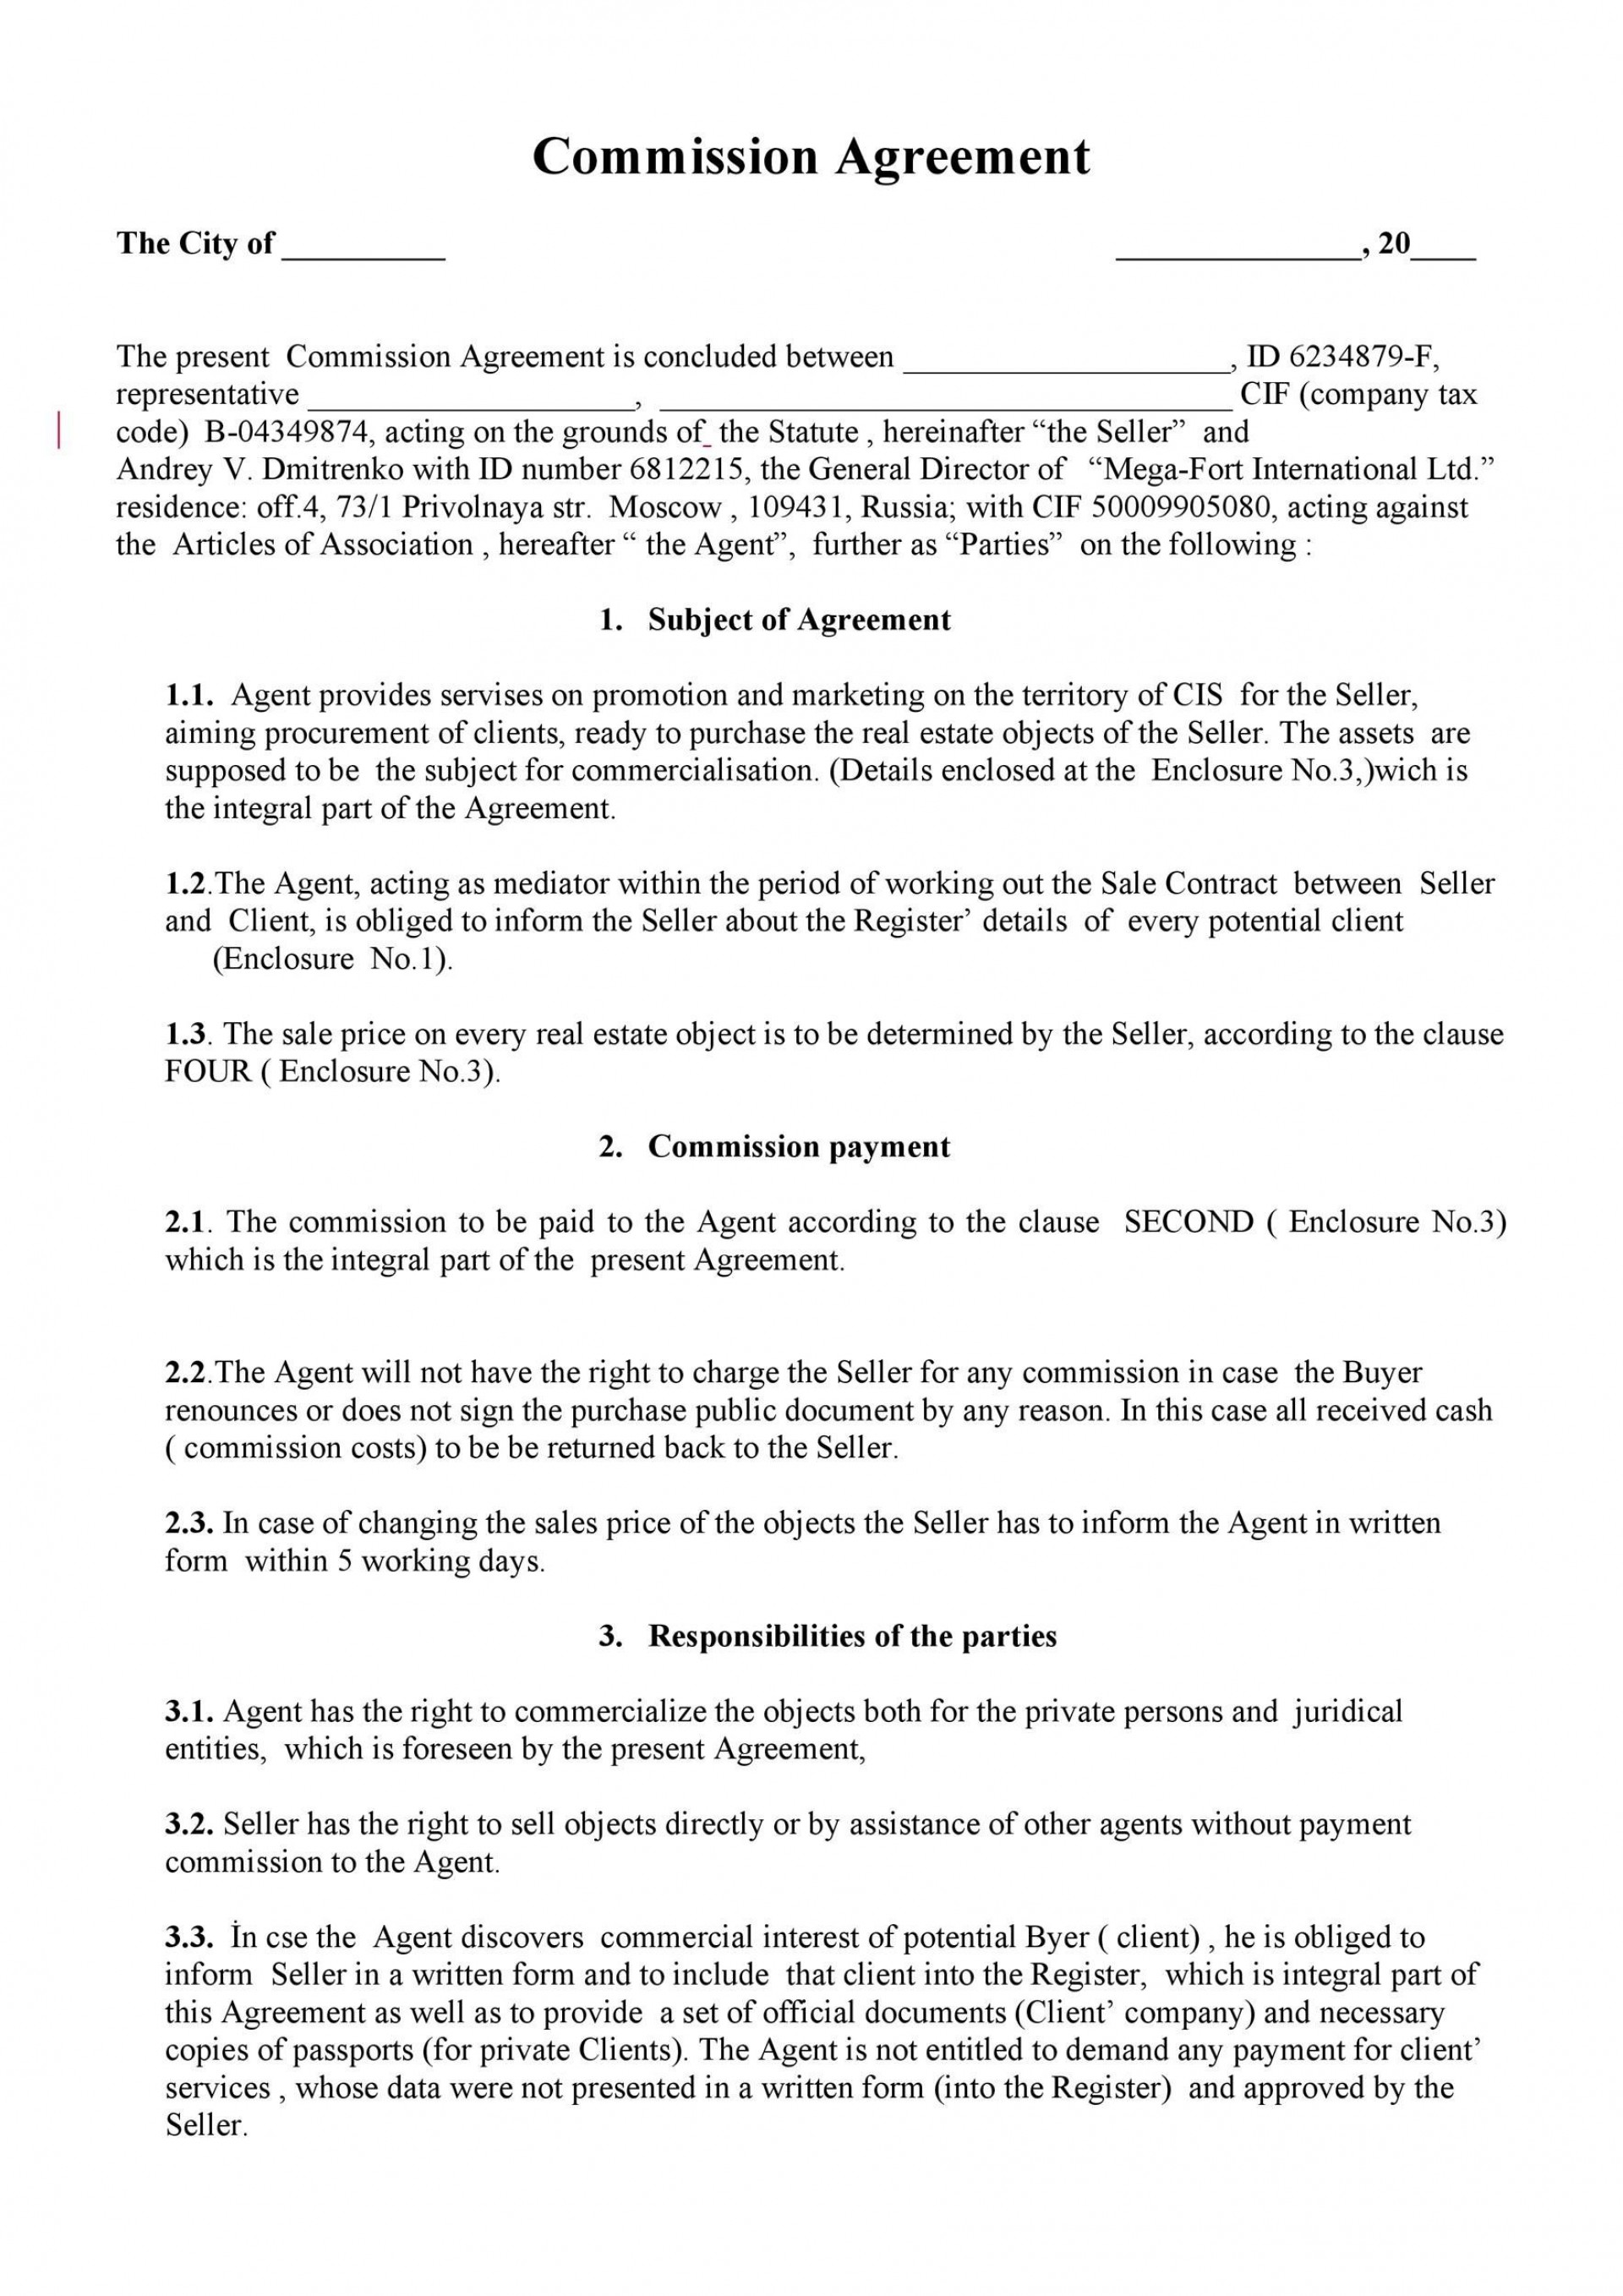 004 Magnificent Property Purchase Agreement Template Uk Highest Quality 1920